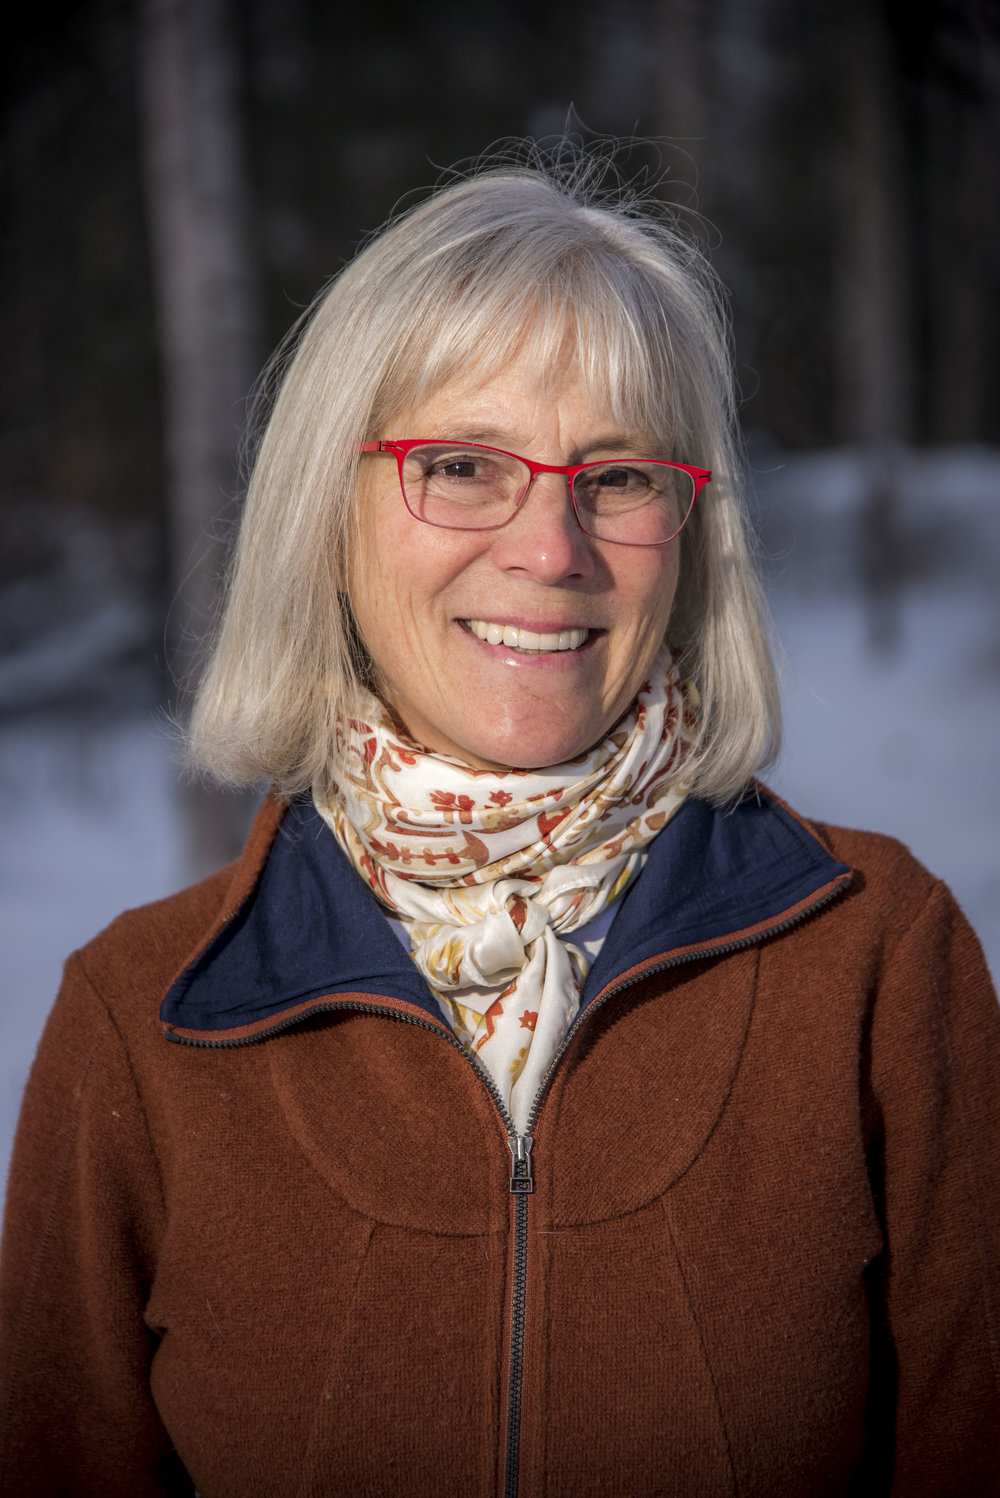 Aging is a natural development with many benefits such as wisdom, hindsight and the calling to speak out about who you really are - Debbie Clarke Moderow, author and Iditarod Trail athlete